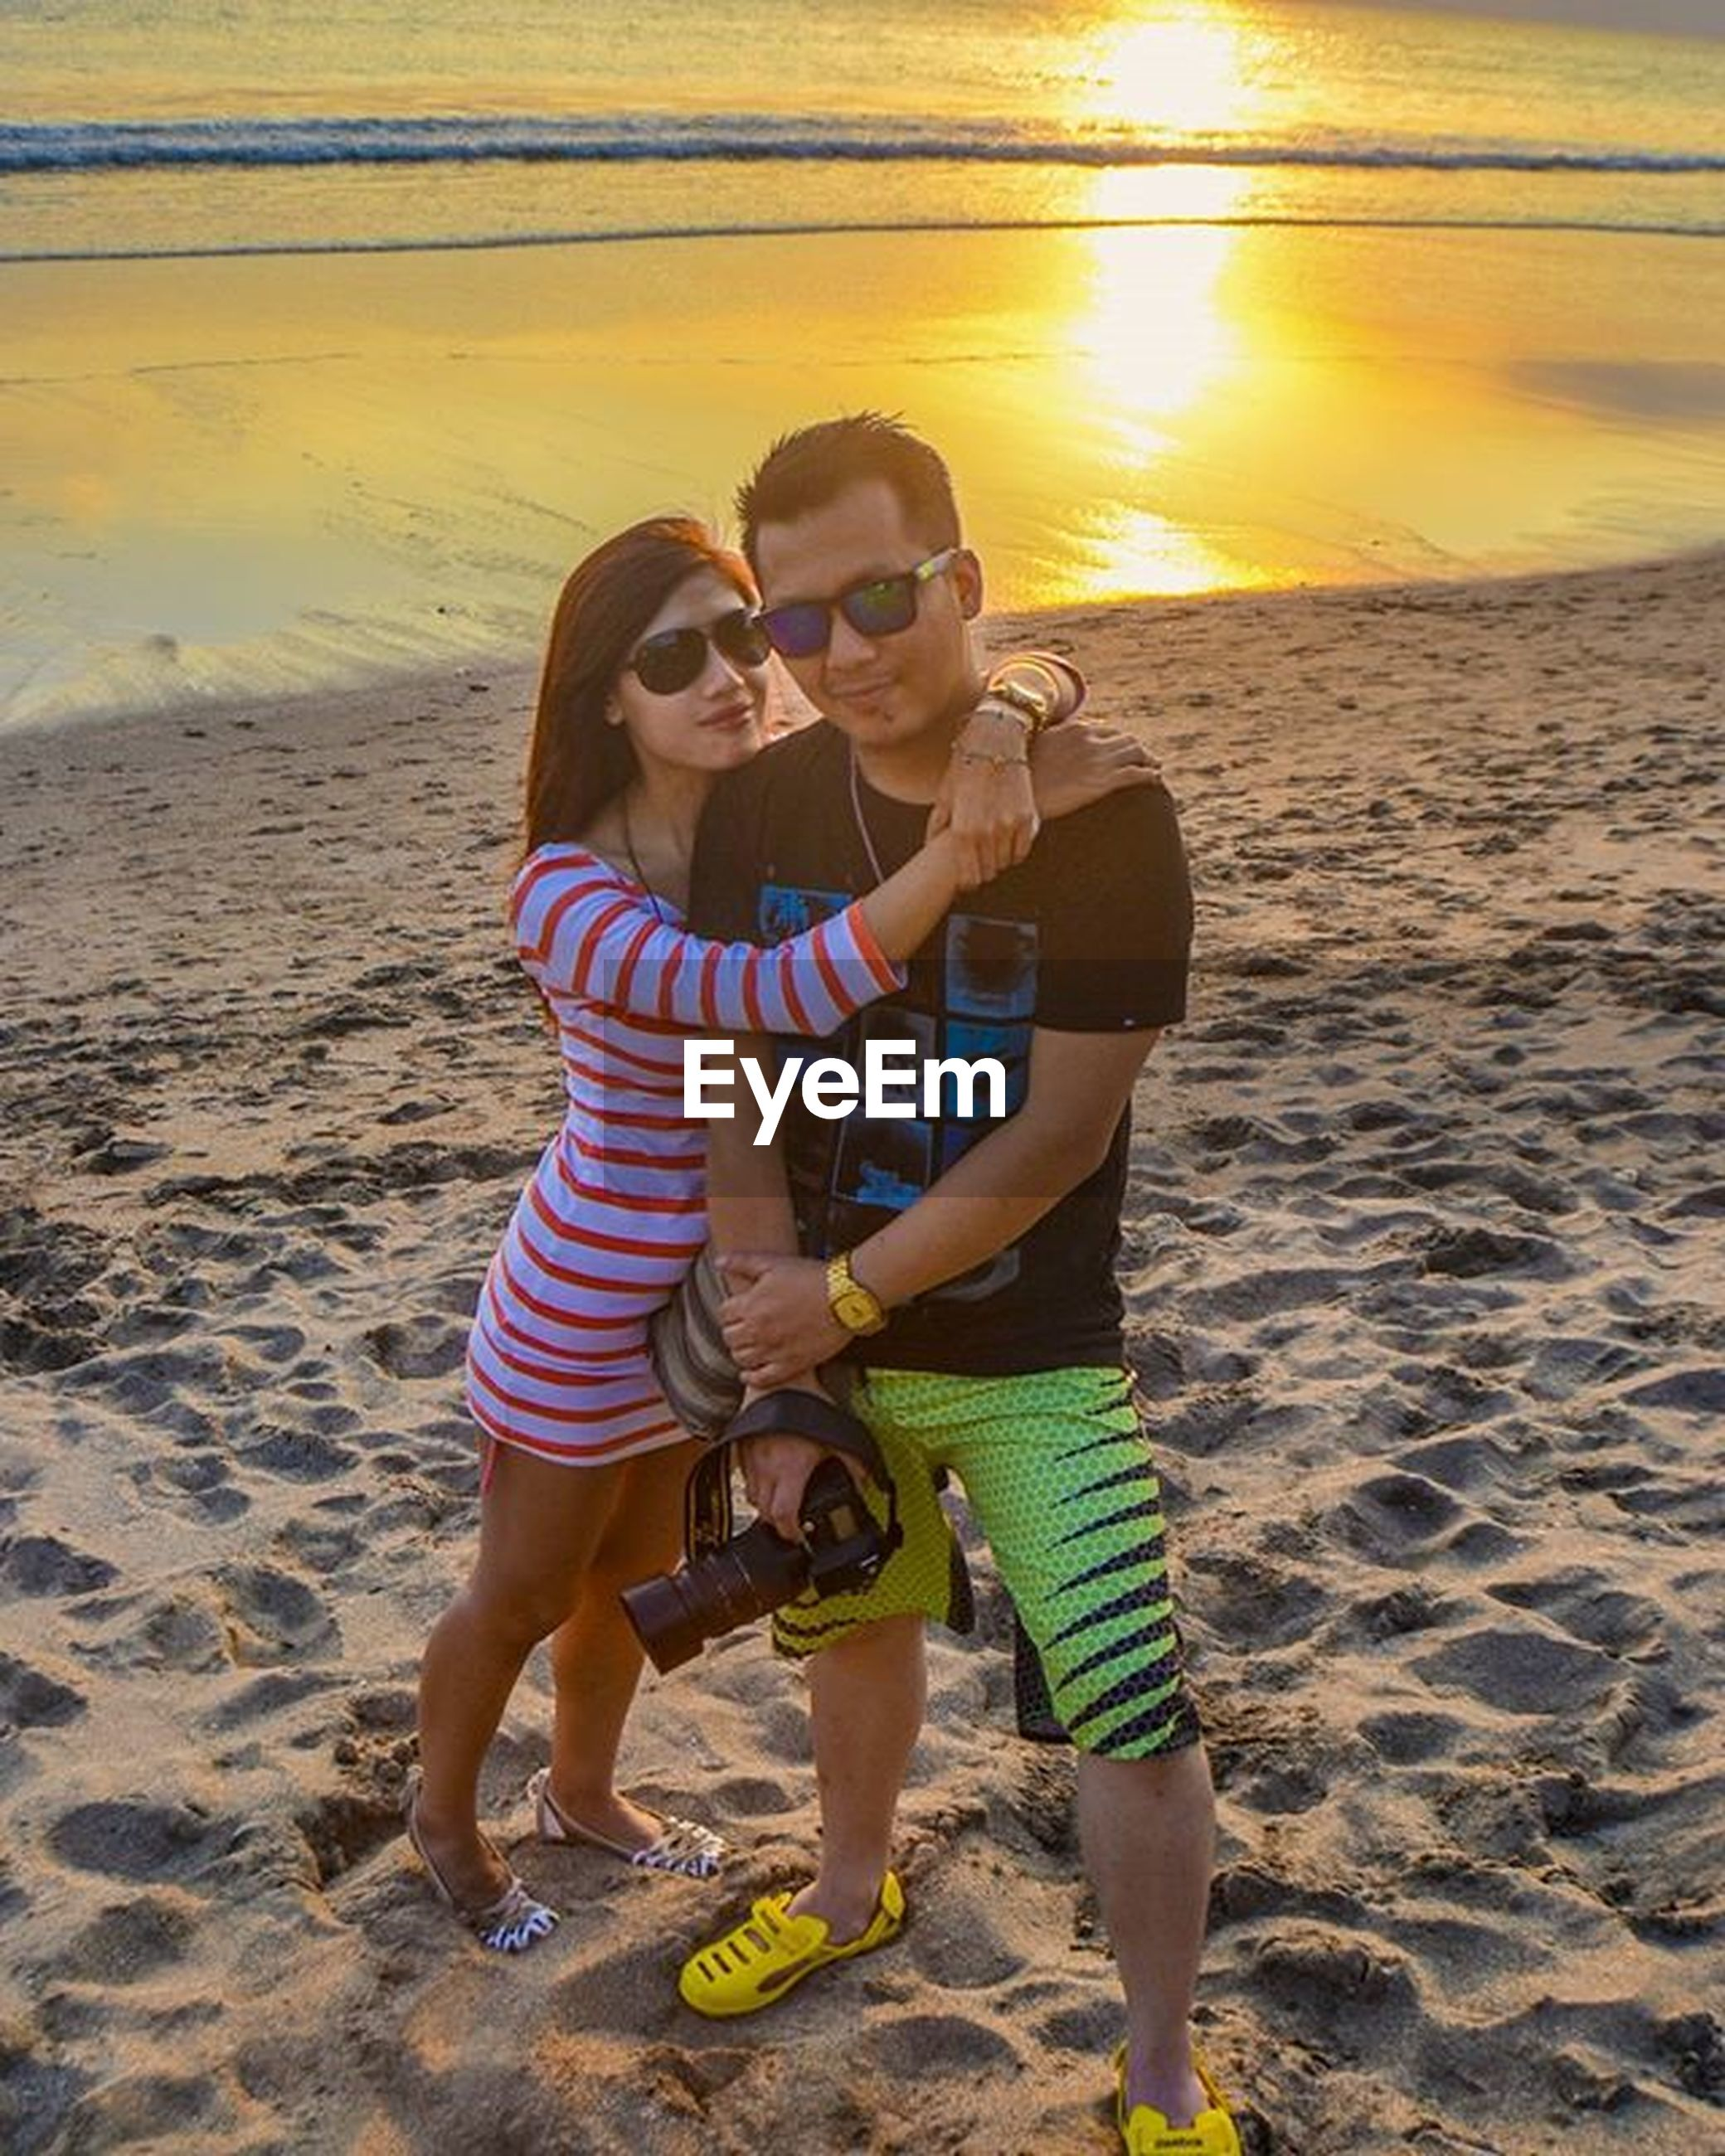 lifestyles, childhood, full length, leisure activity, togetherness, casual clothing, boys, bonding, person, beach, girls, elementary age, love, sand, family, happiness, sunlight, enjoyment